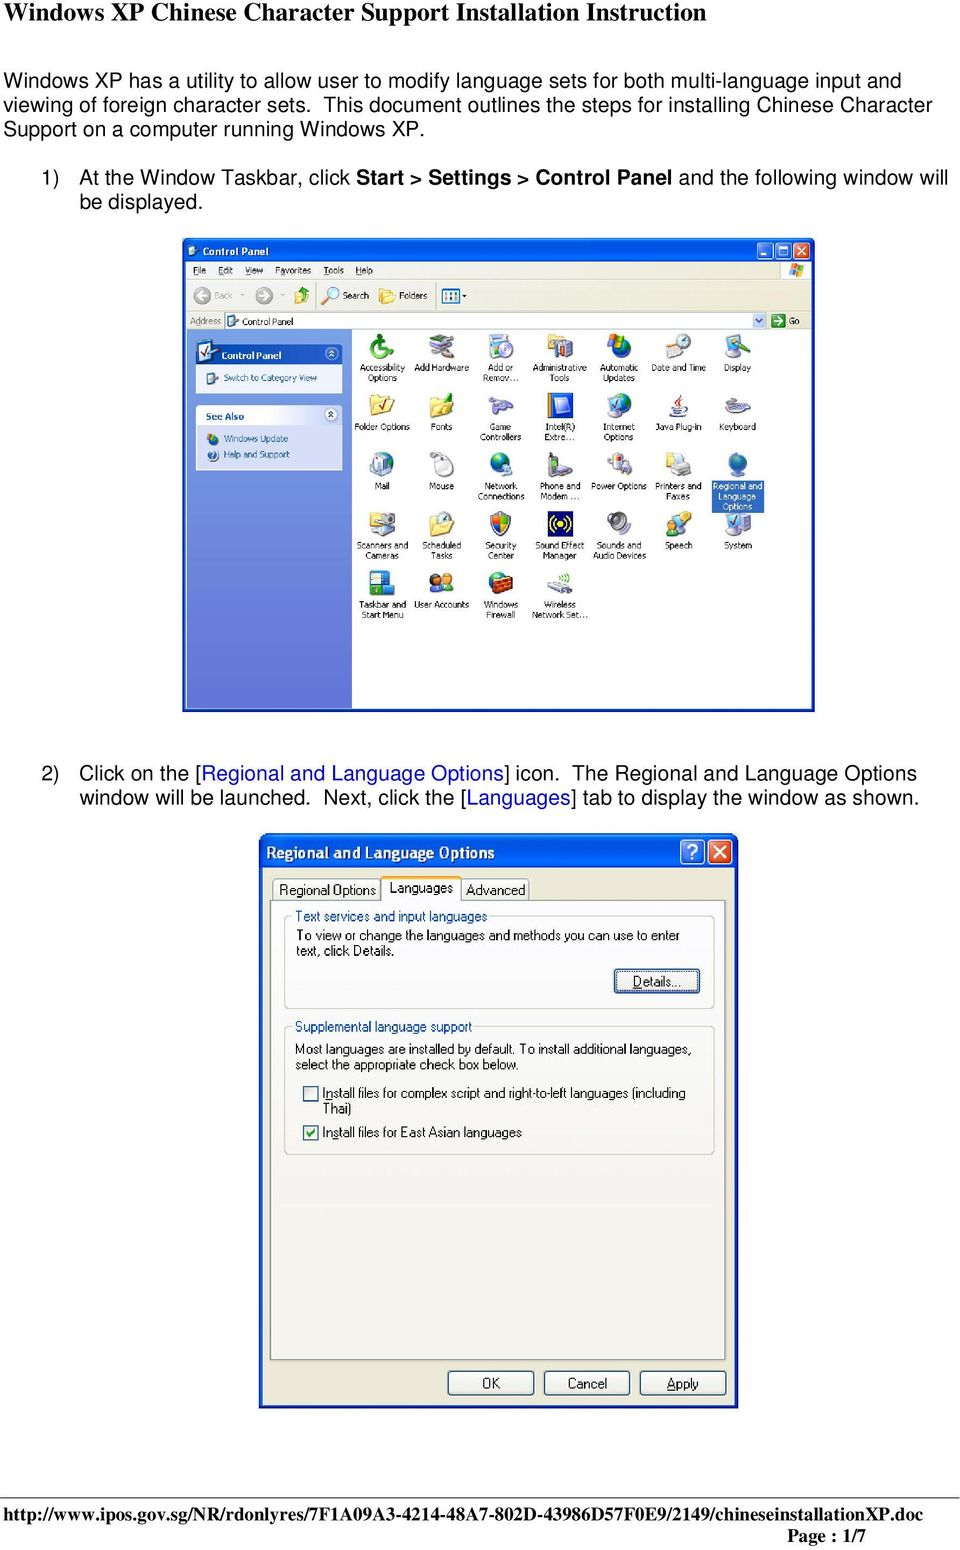 This document outlines the steps for installing Chinese Character Support on a computer running Windows XP.